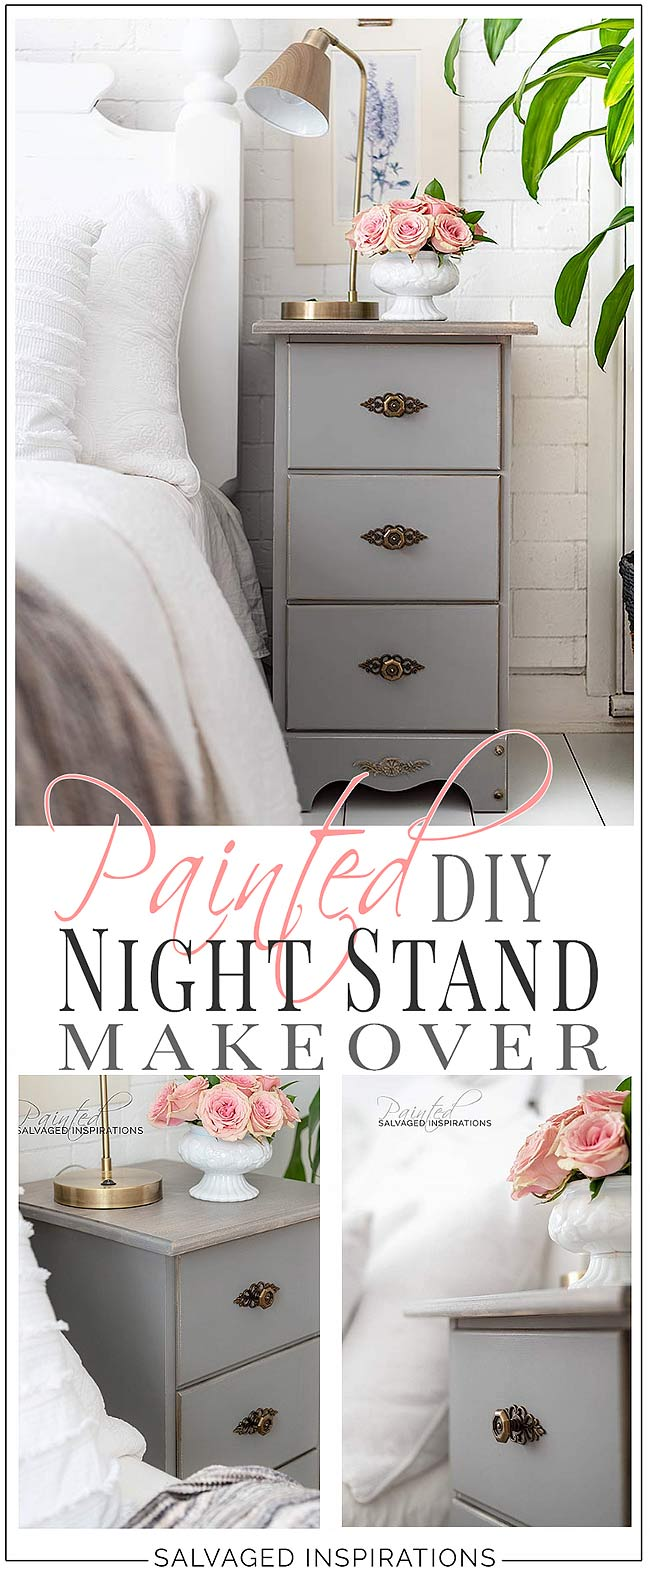 Painted DIY Night Stand Makeover